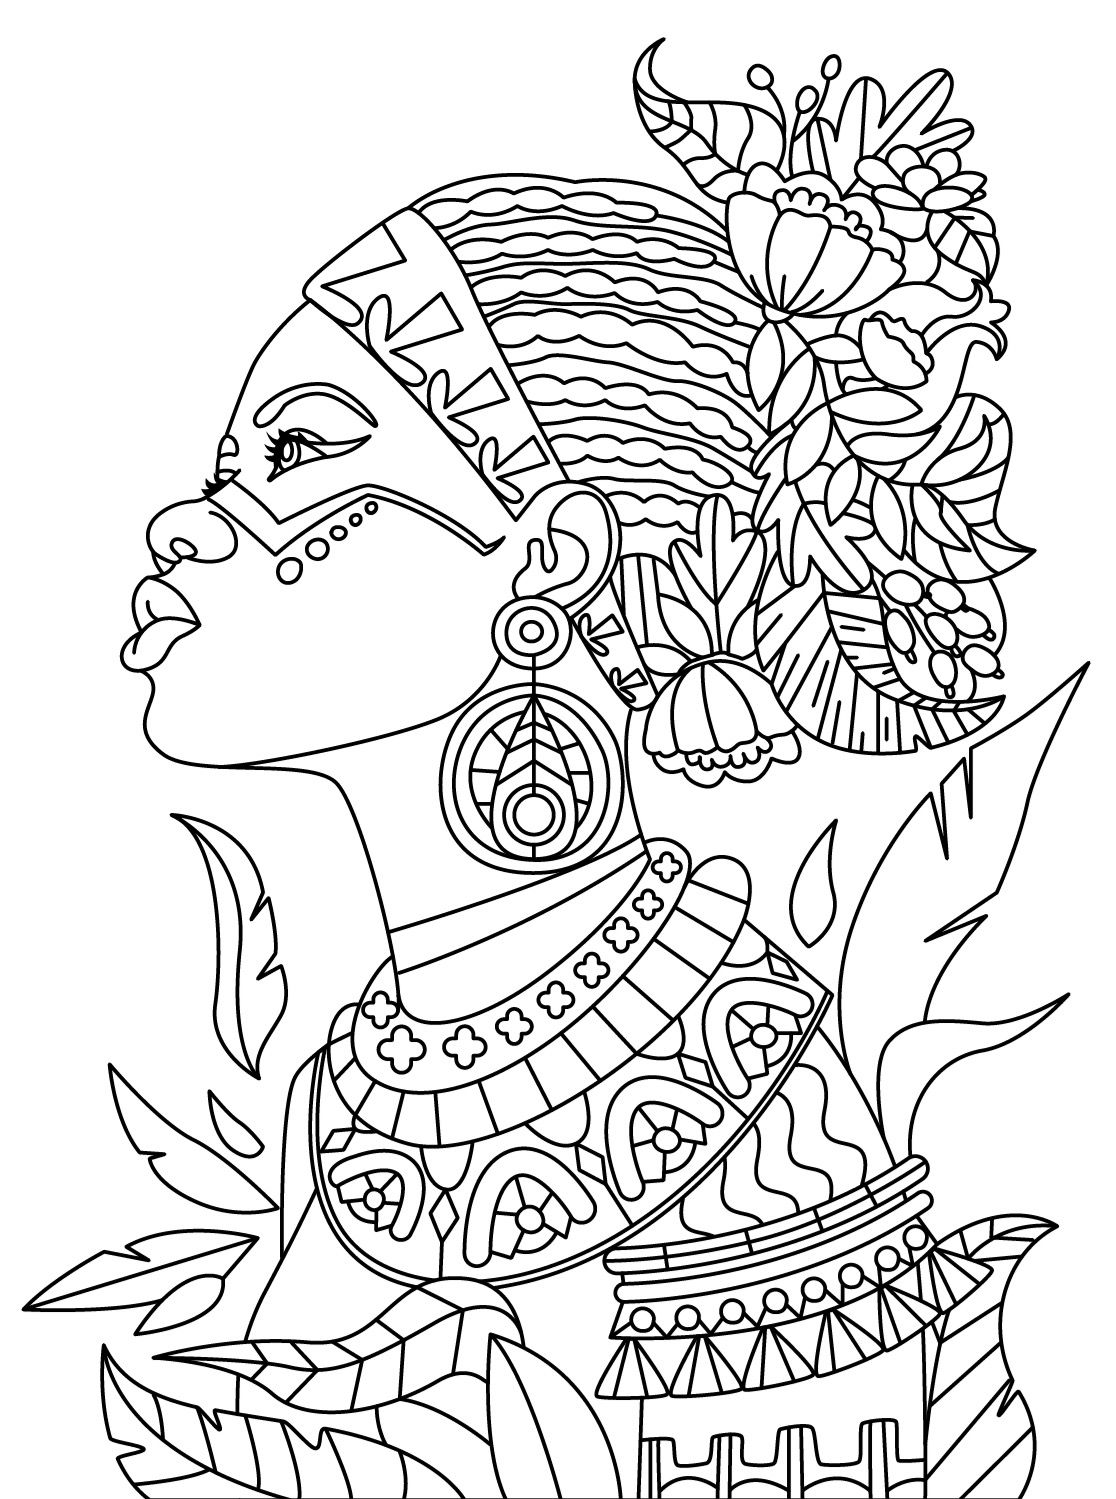 Africa Adult Coloring Pages